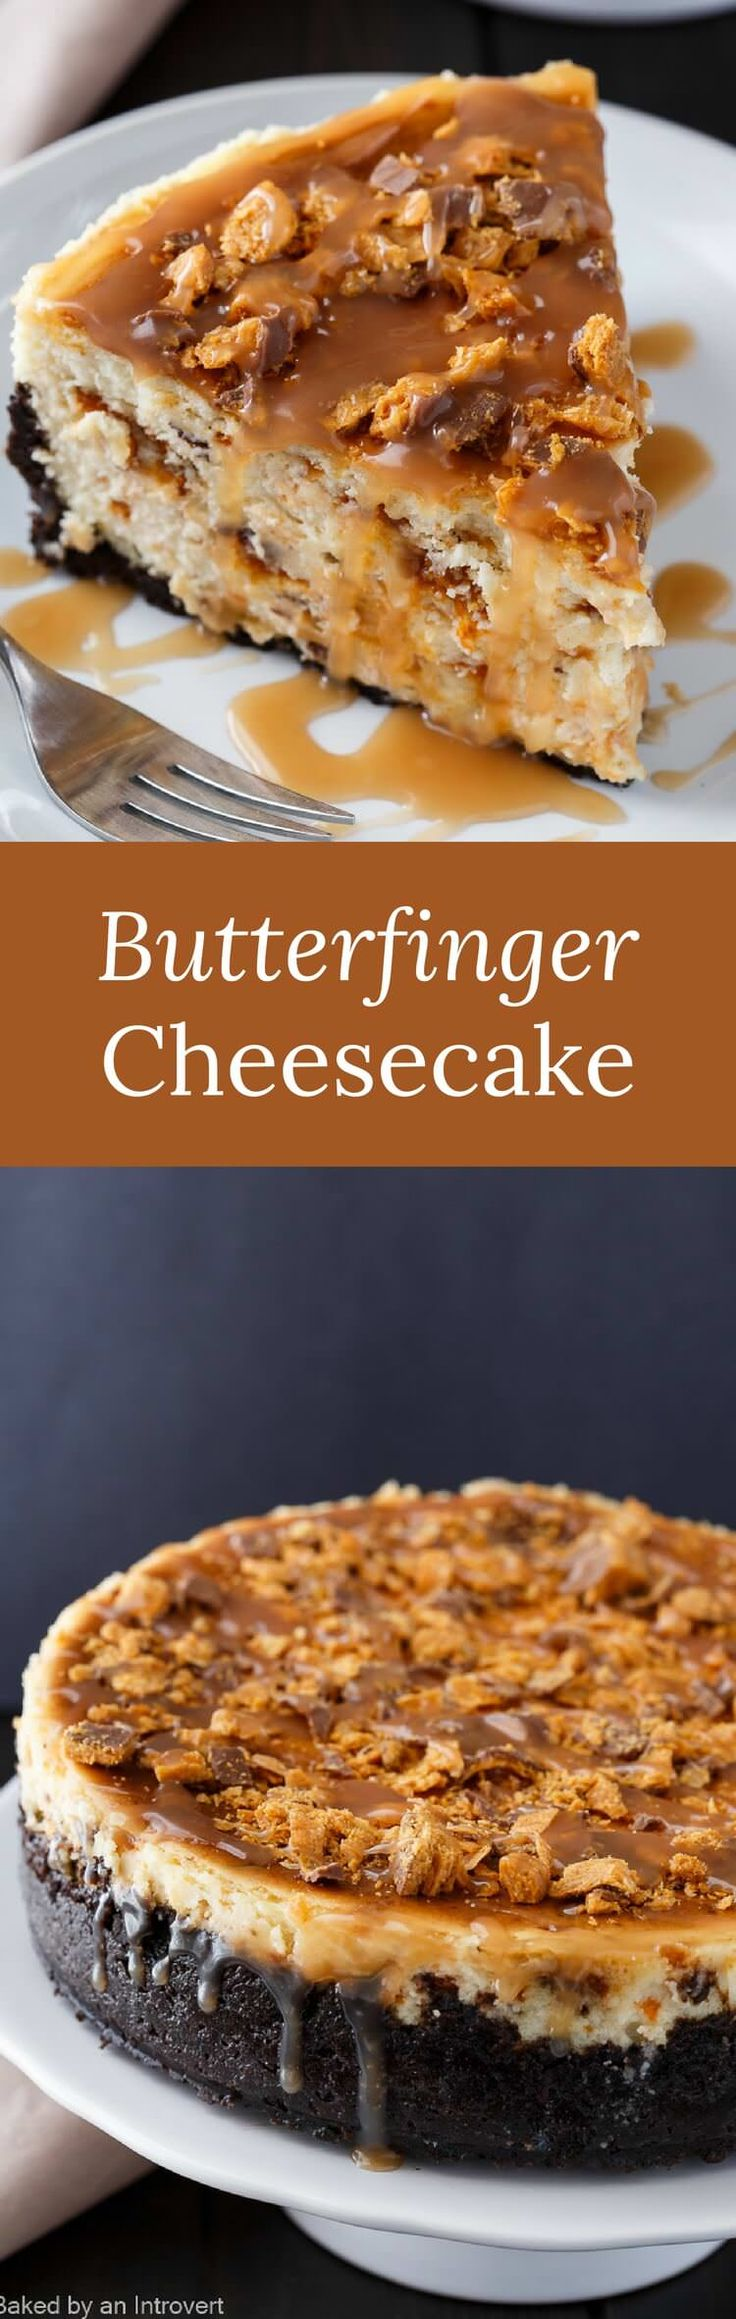 There is so much to love about Butterfinger Cheesecake with Caramel Drizzle. Butterfinger bars and cheesecake is an incredible combination. via @introvertbaker